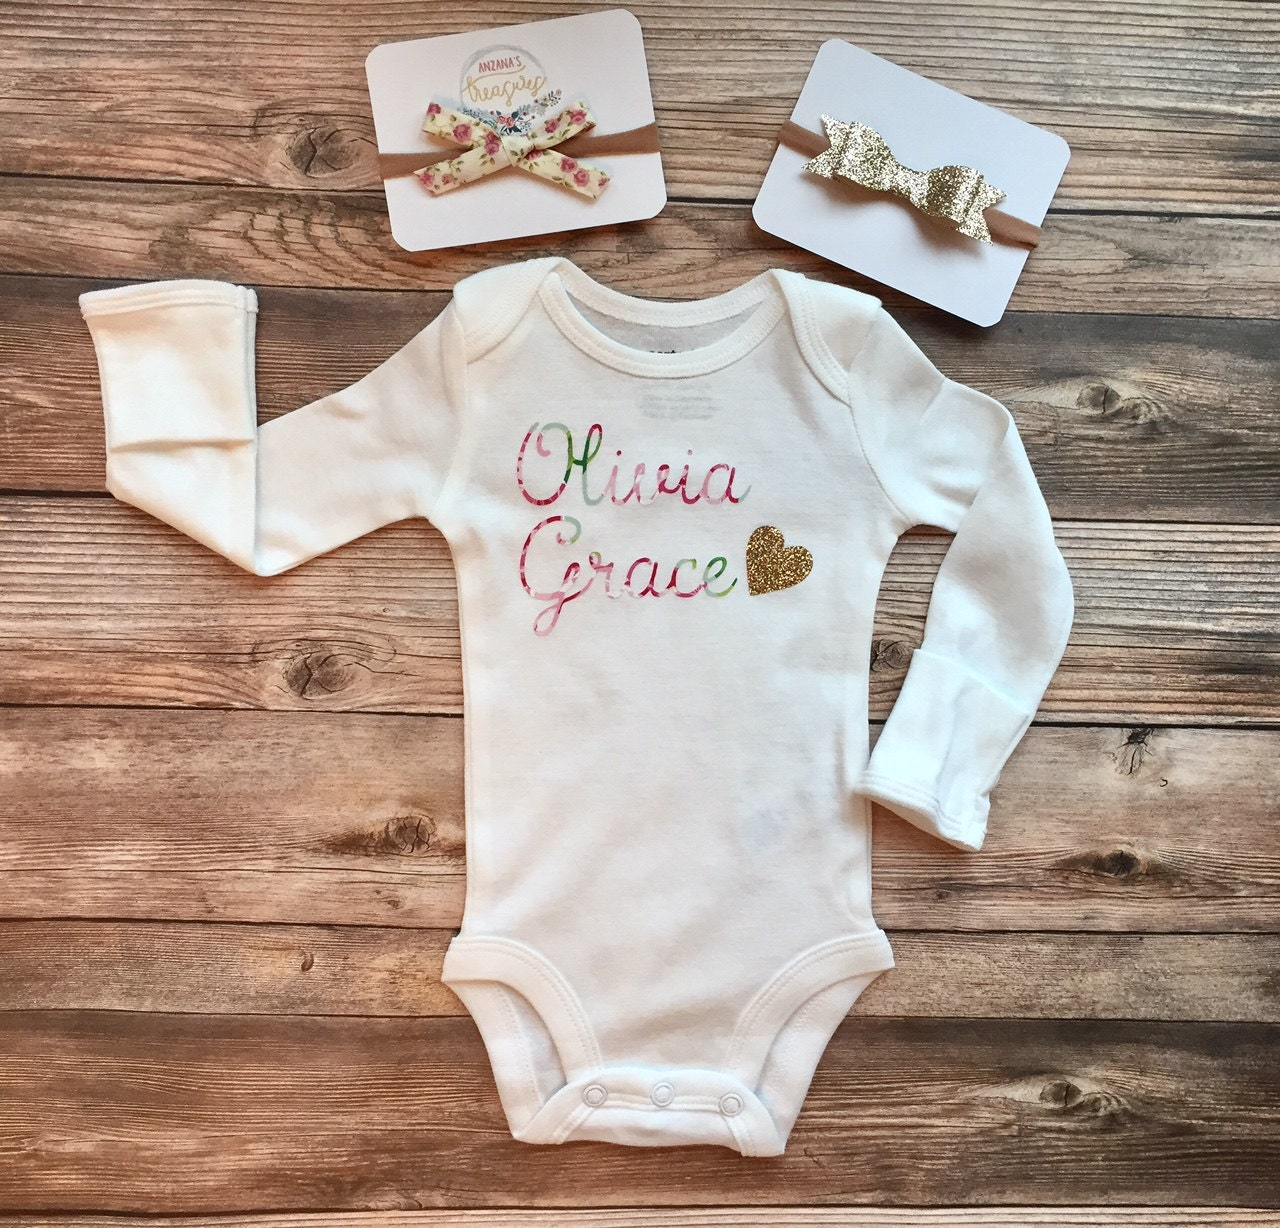 Gold Glitter And Floral Baby Name Onesie Newborn Outfit